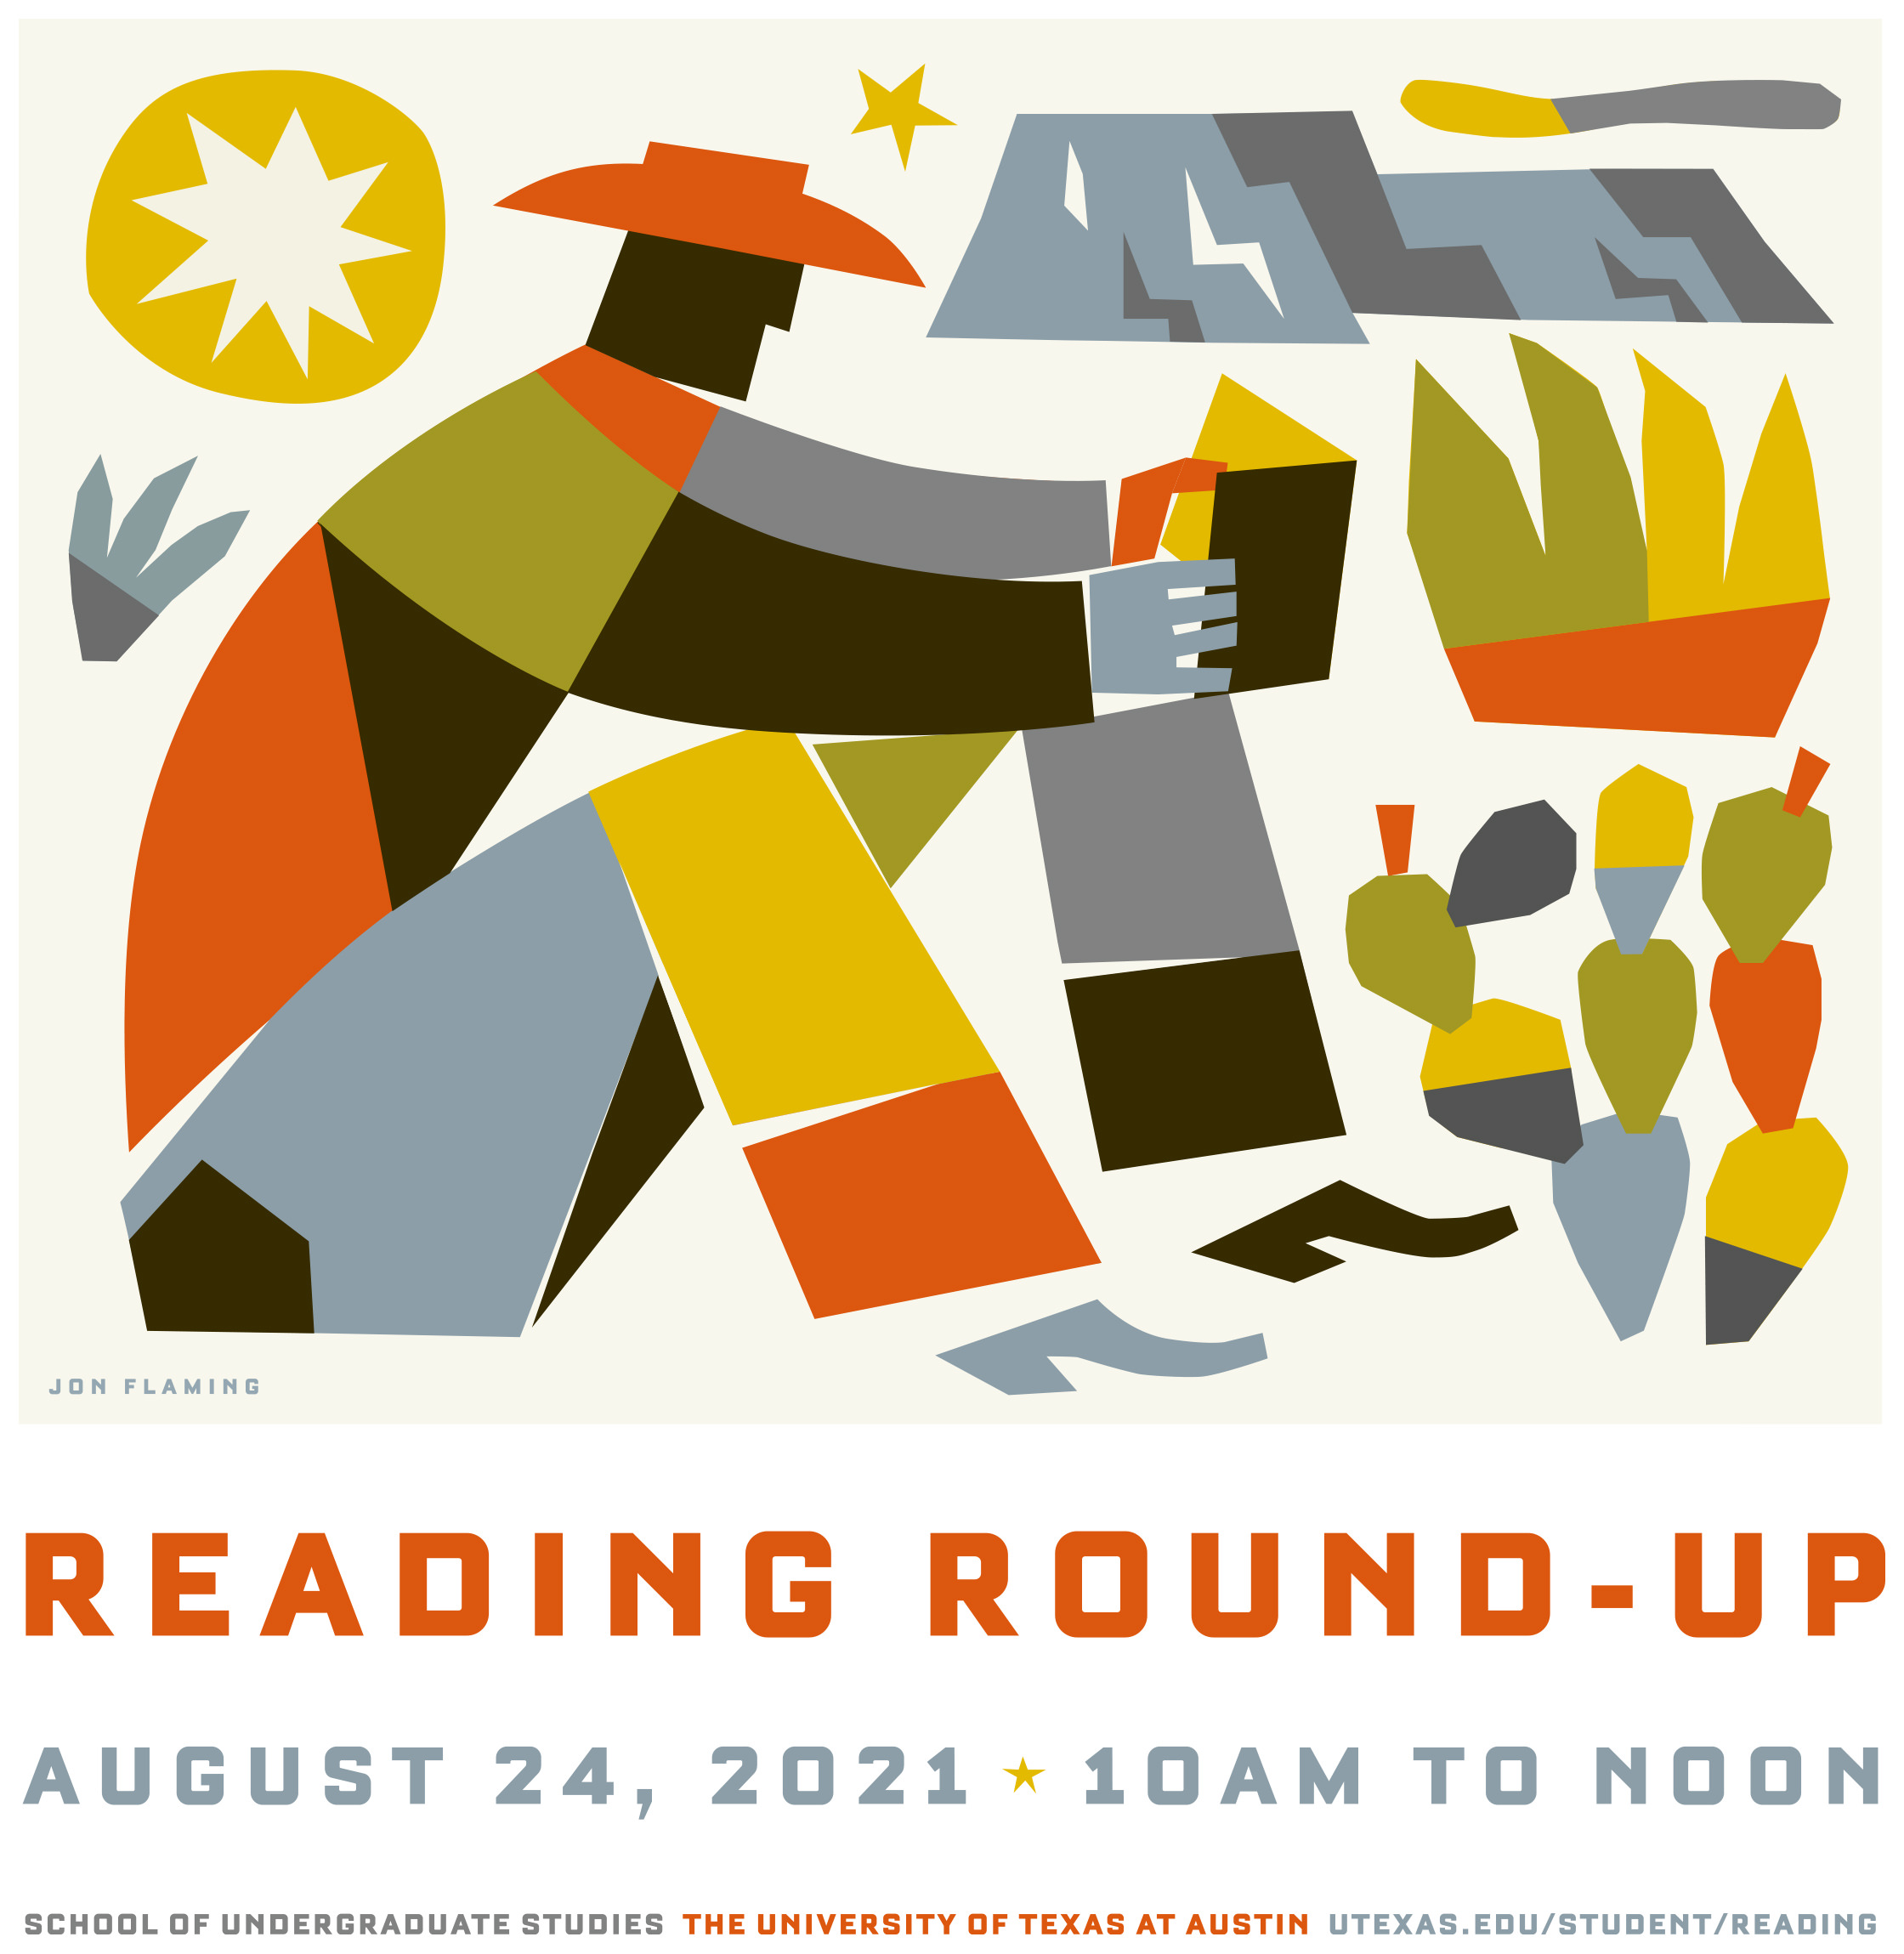 2021 Reading Round Up Poster by Jon Flaming